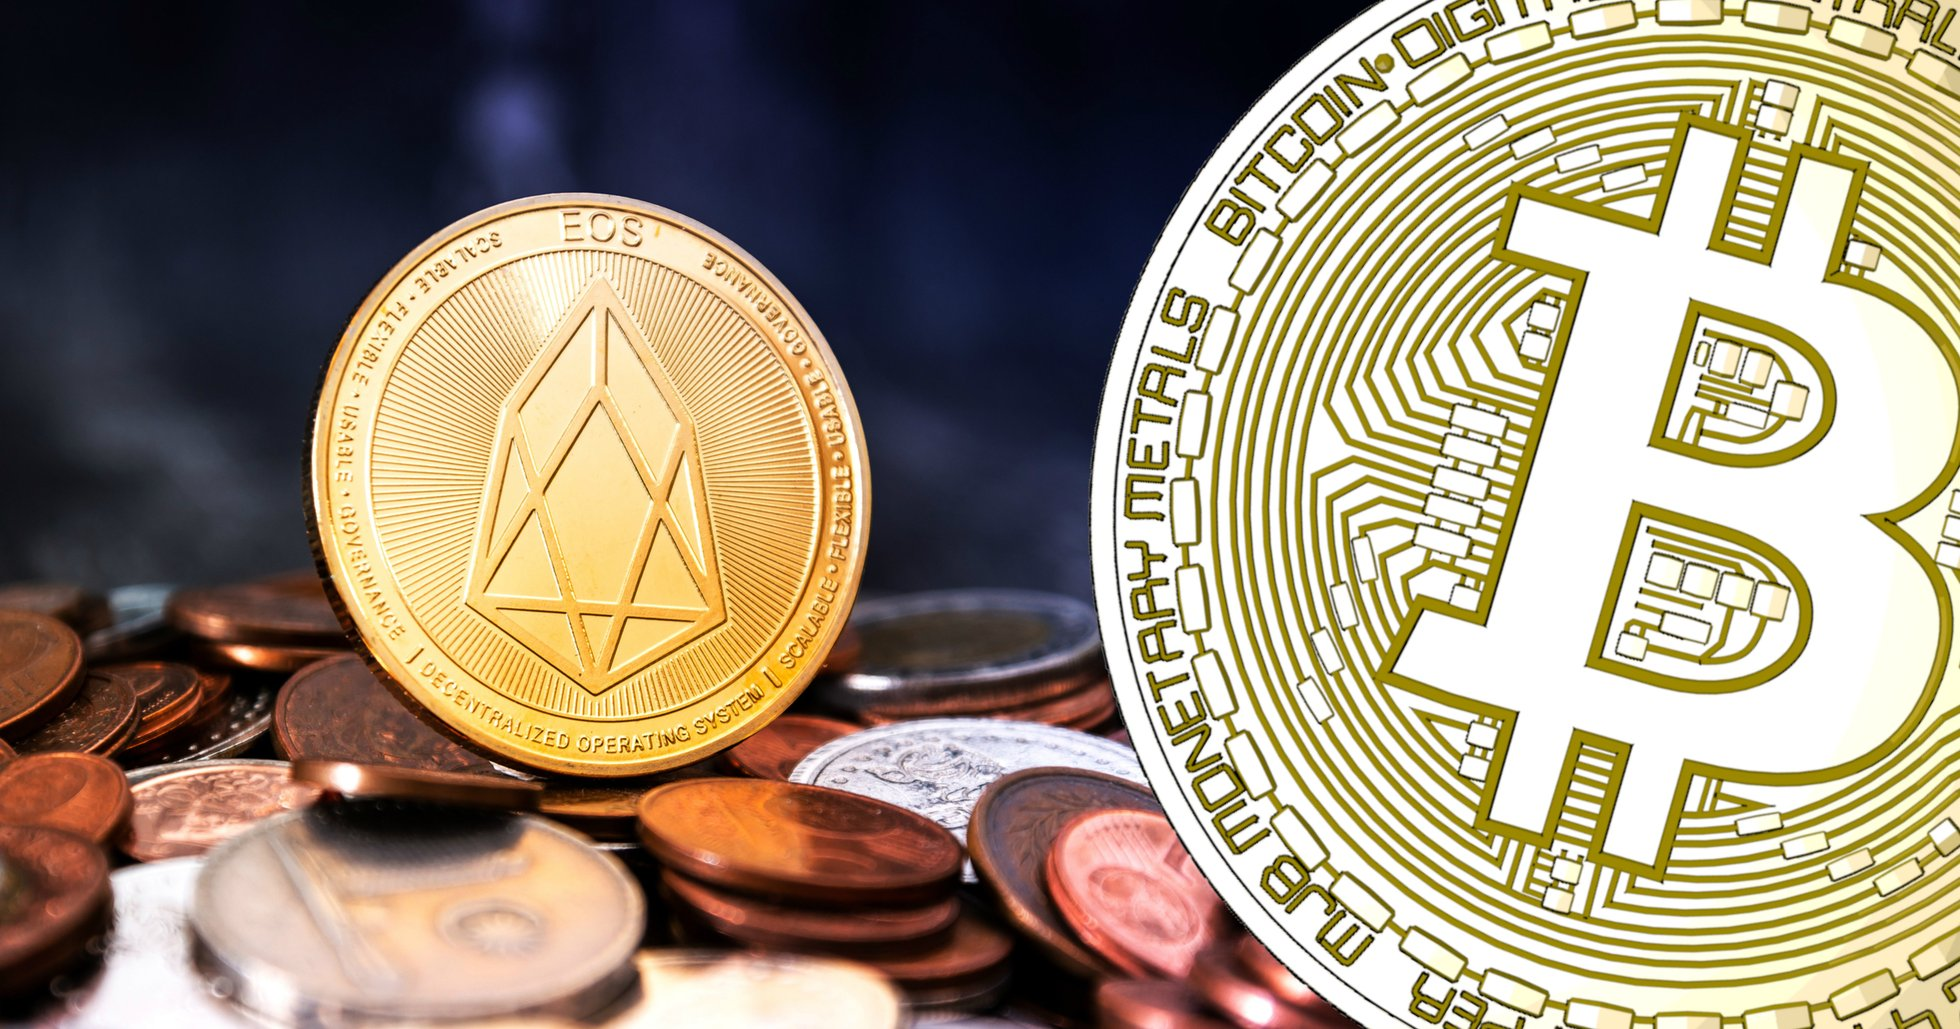 Daily crypto: Markets soar slightly – eos increases the most of the biggest currencies.